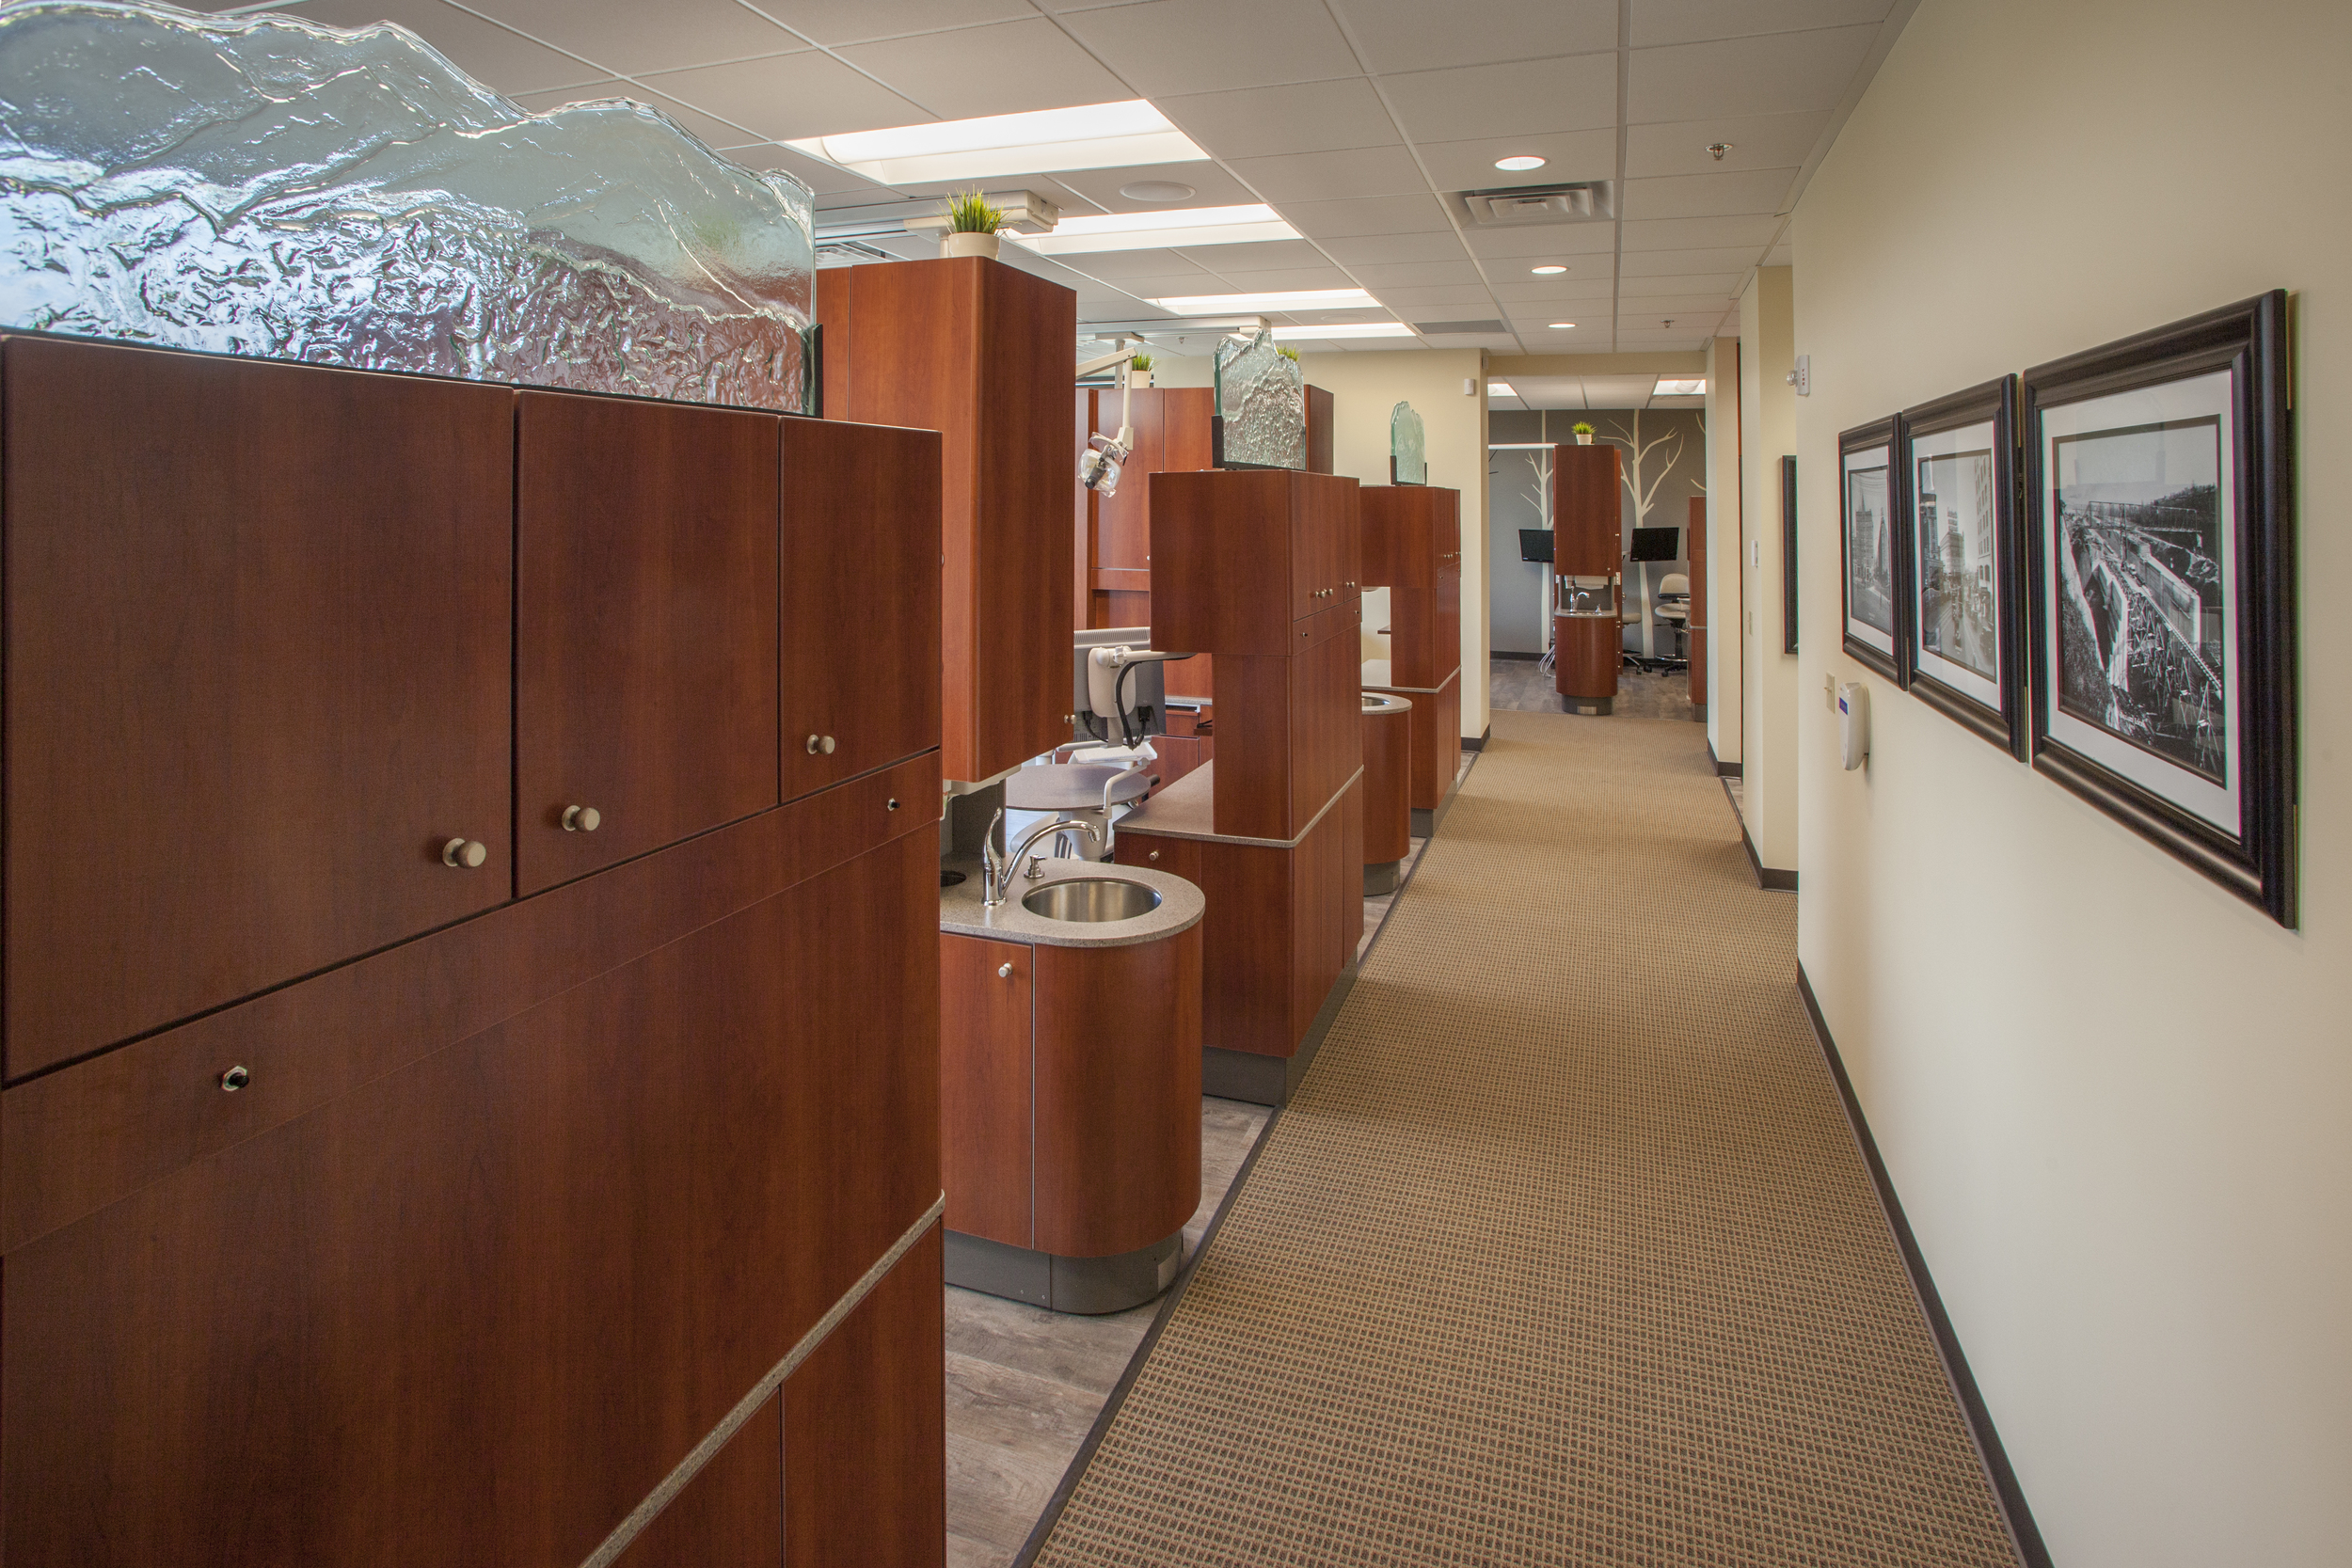 State of the art dental equipment to provide comprehensive general dental services in the best, relaxing atmosphere (Dr. Scott Stewart General Family Dentist, Silverdale Dentist)